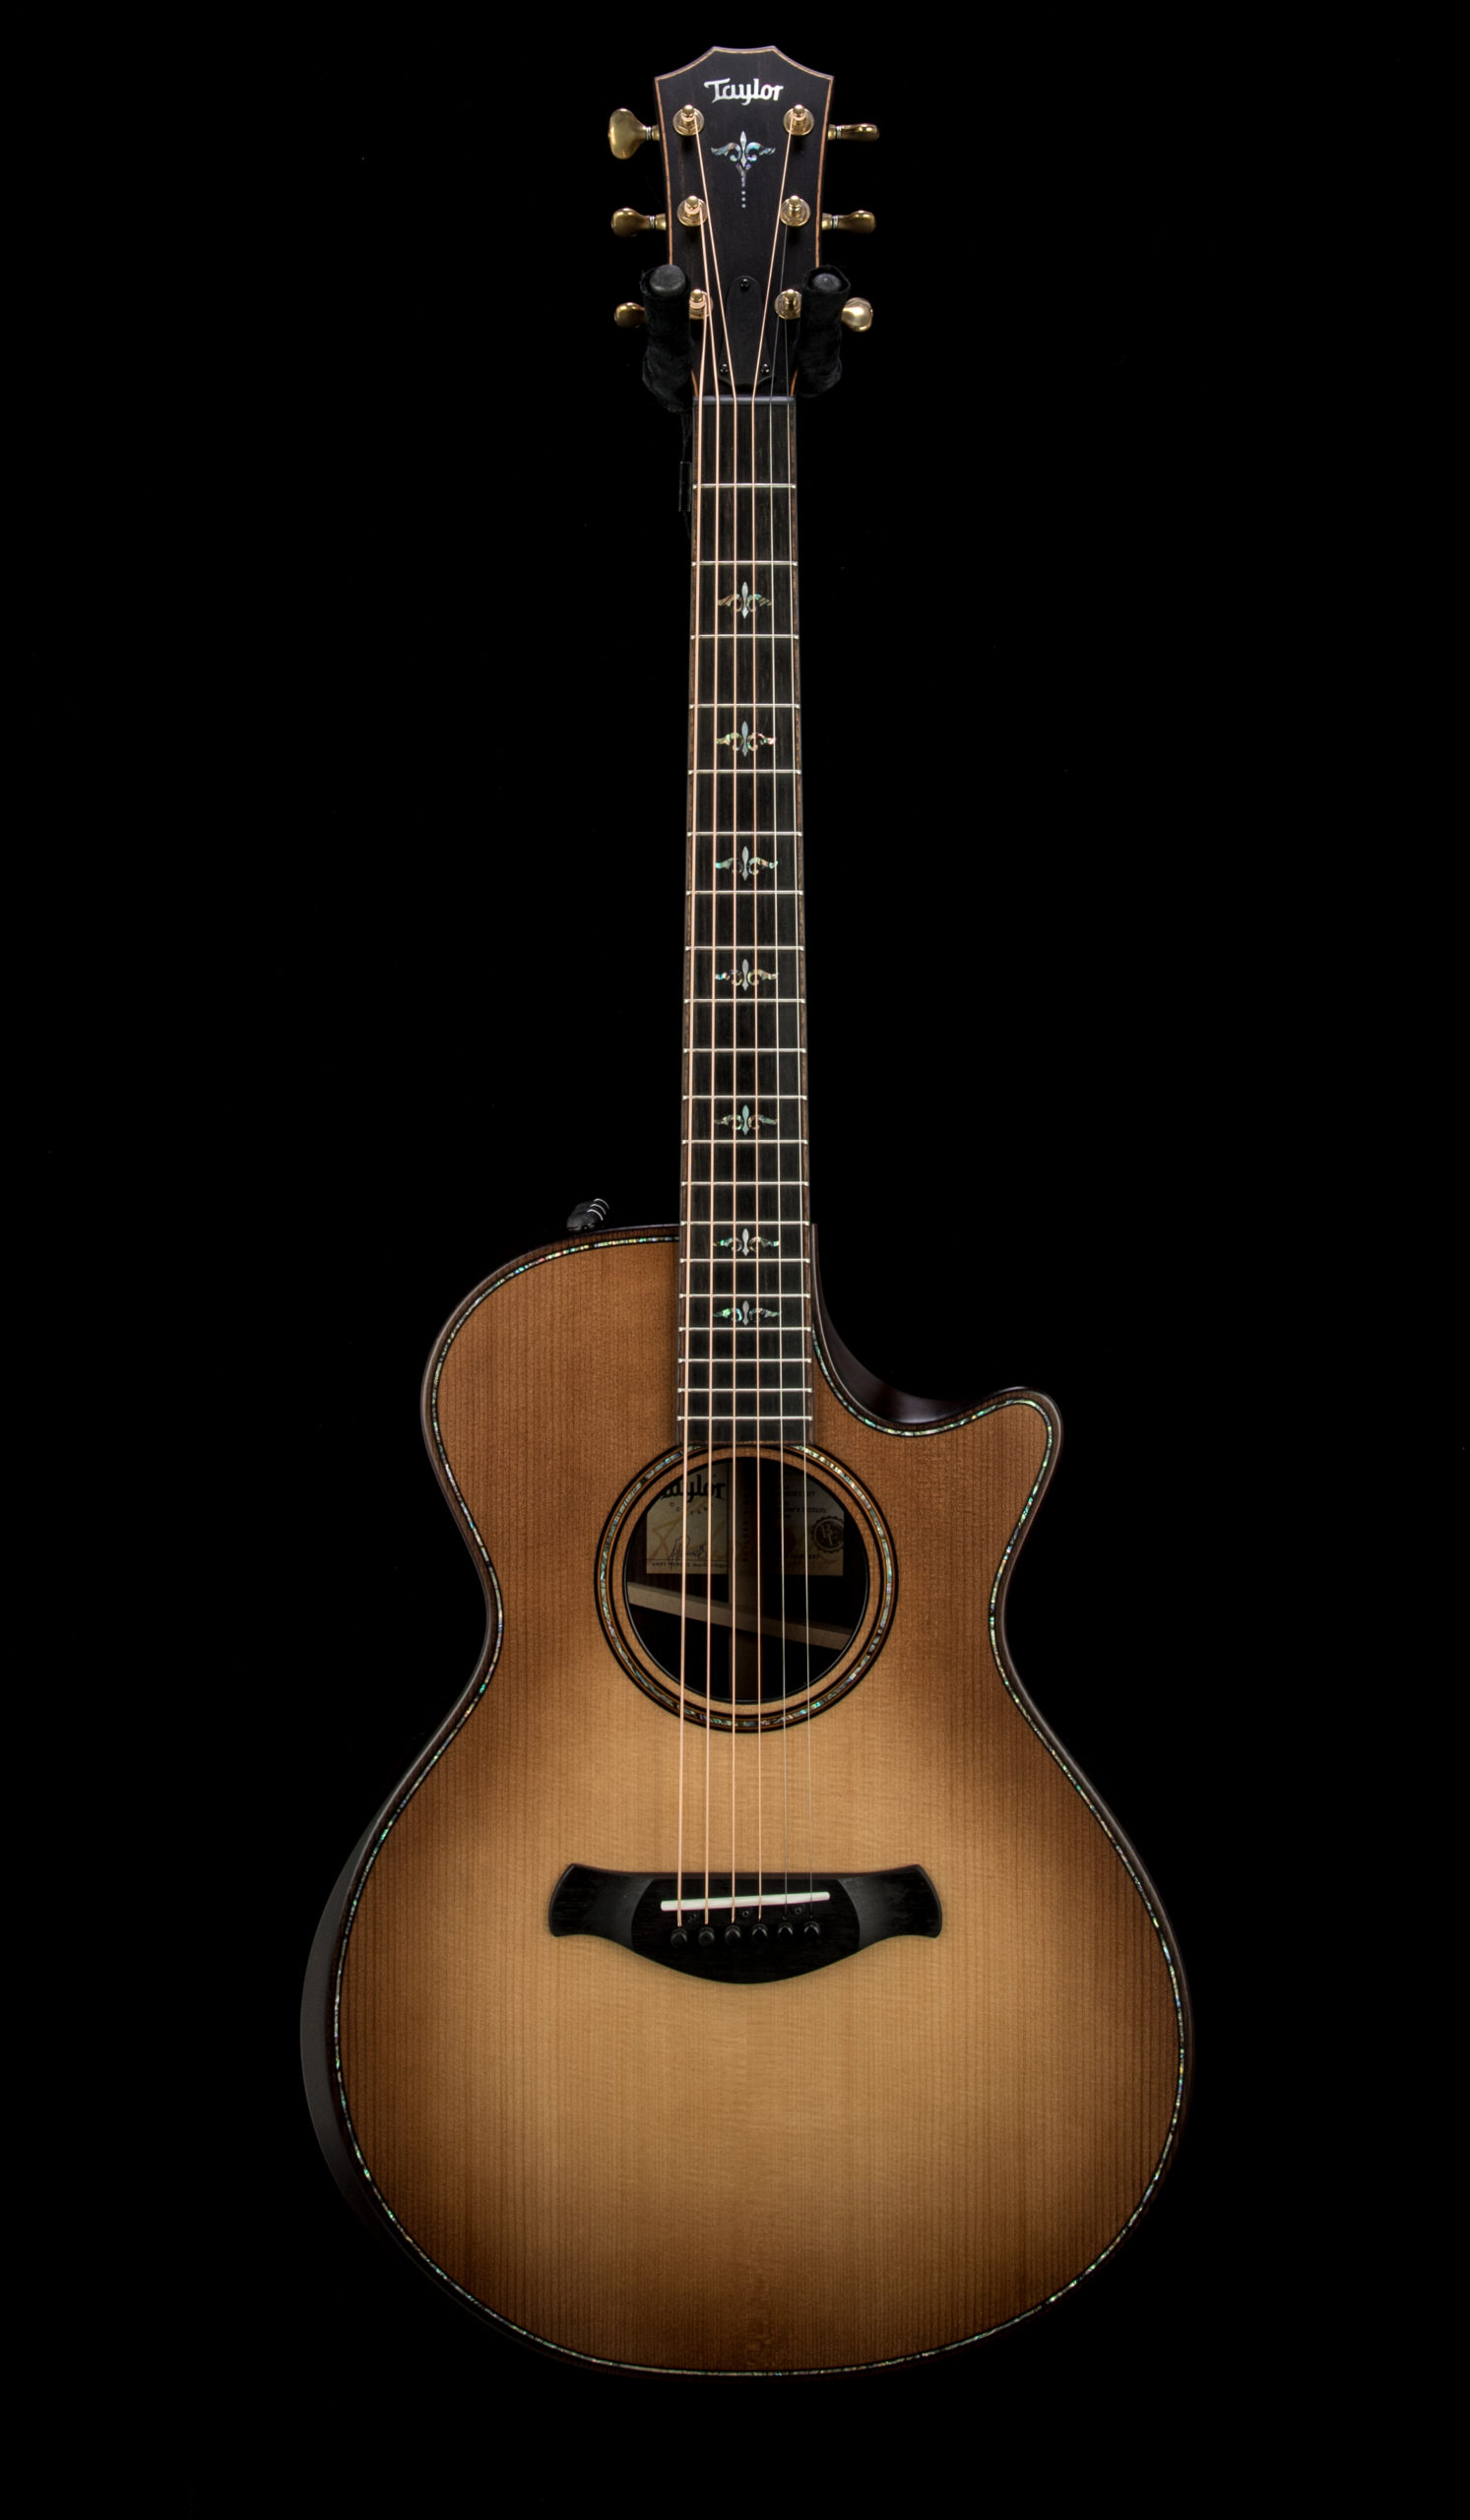 05 Taylor 912ce Builders Edition #1209081127 Front